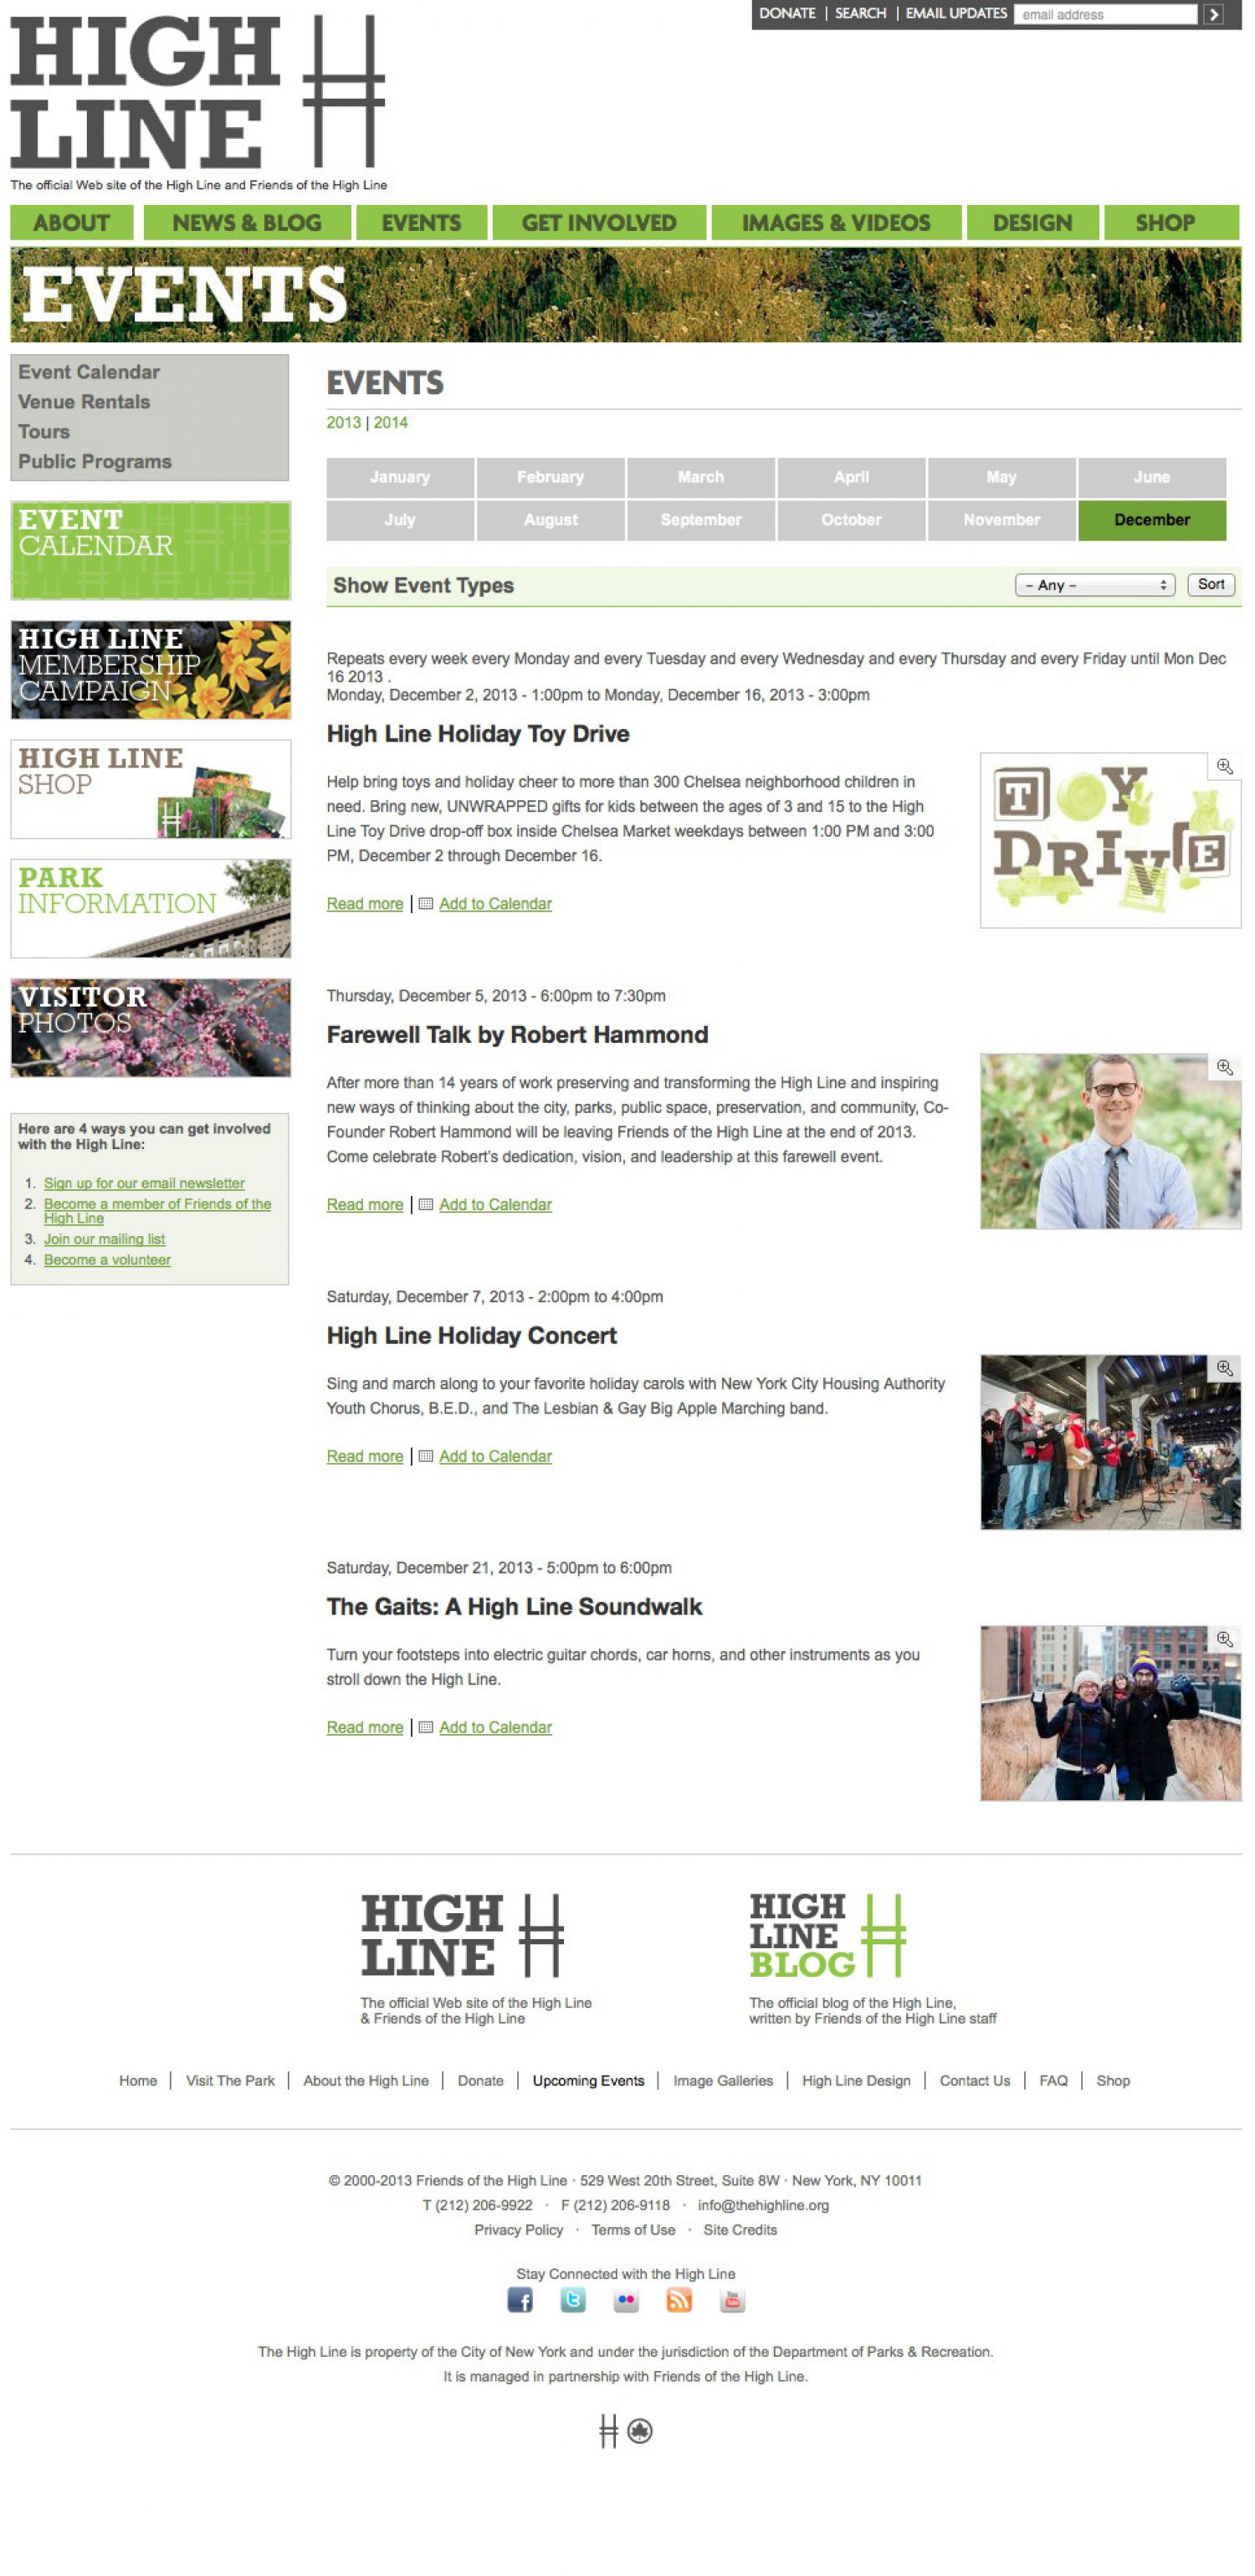 Screenshot of the High Line website's events page